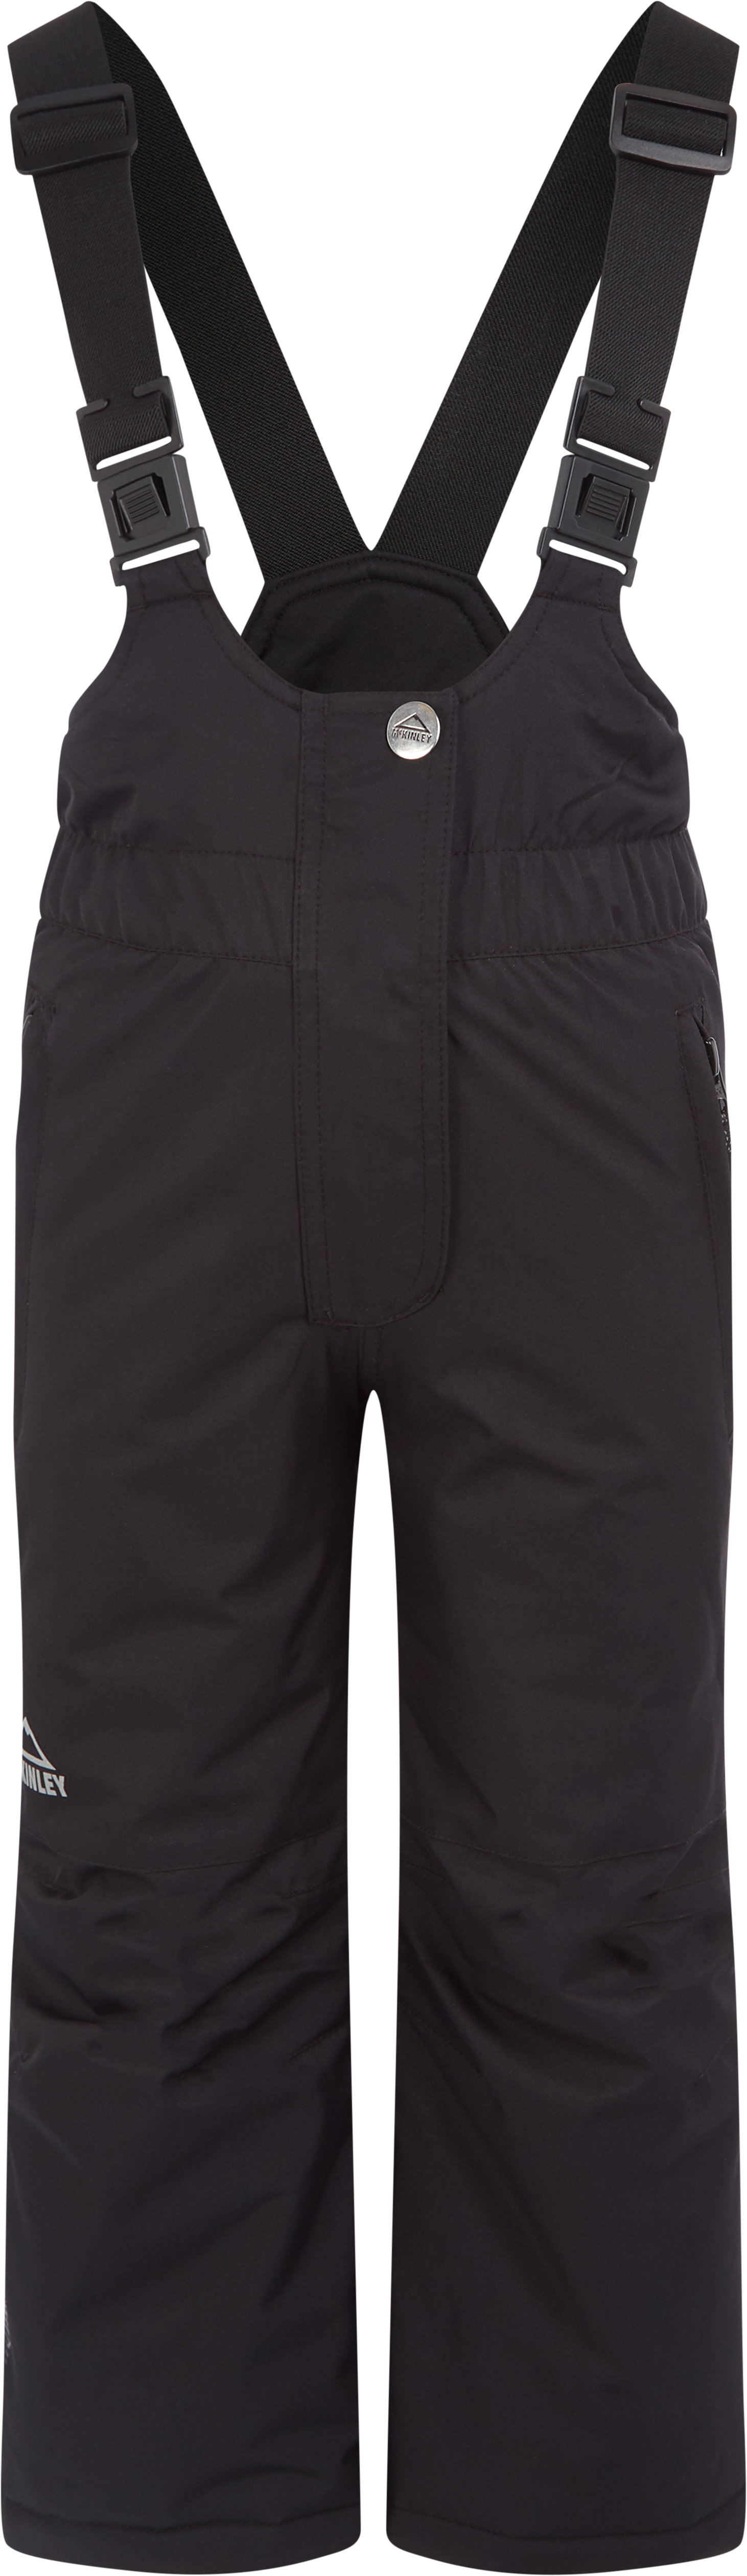 McKINLEY Mizzle Pants M Miesten kuorihousut | Intersport